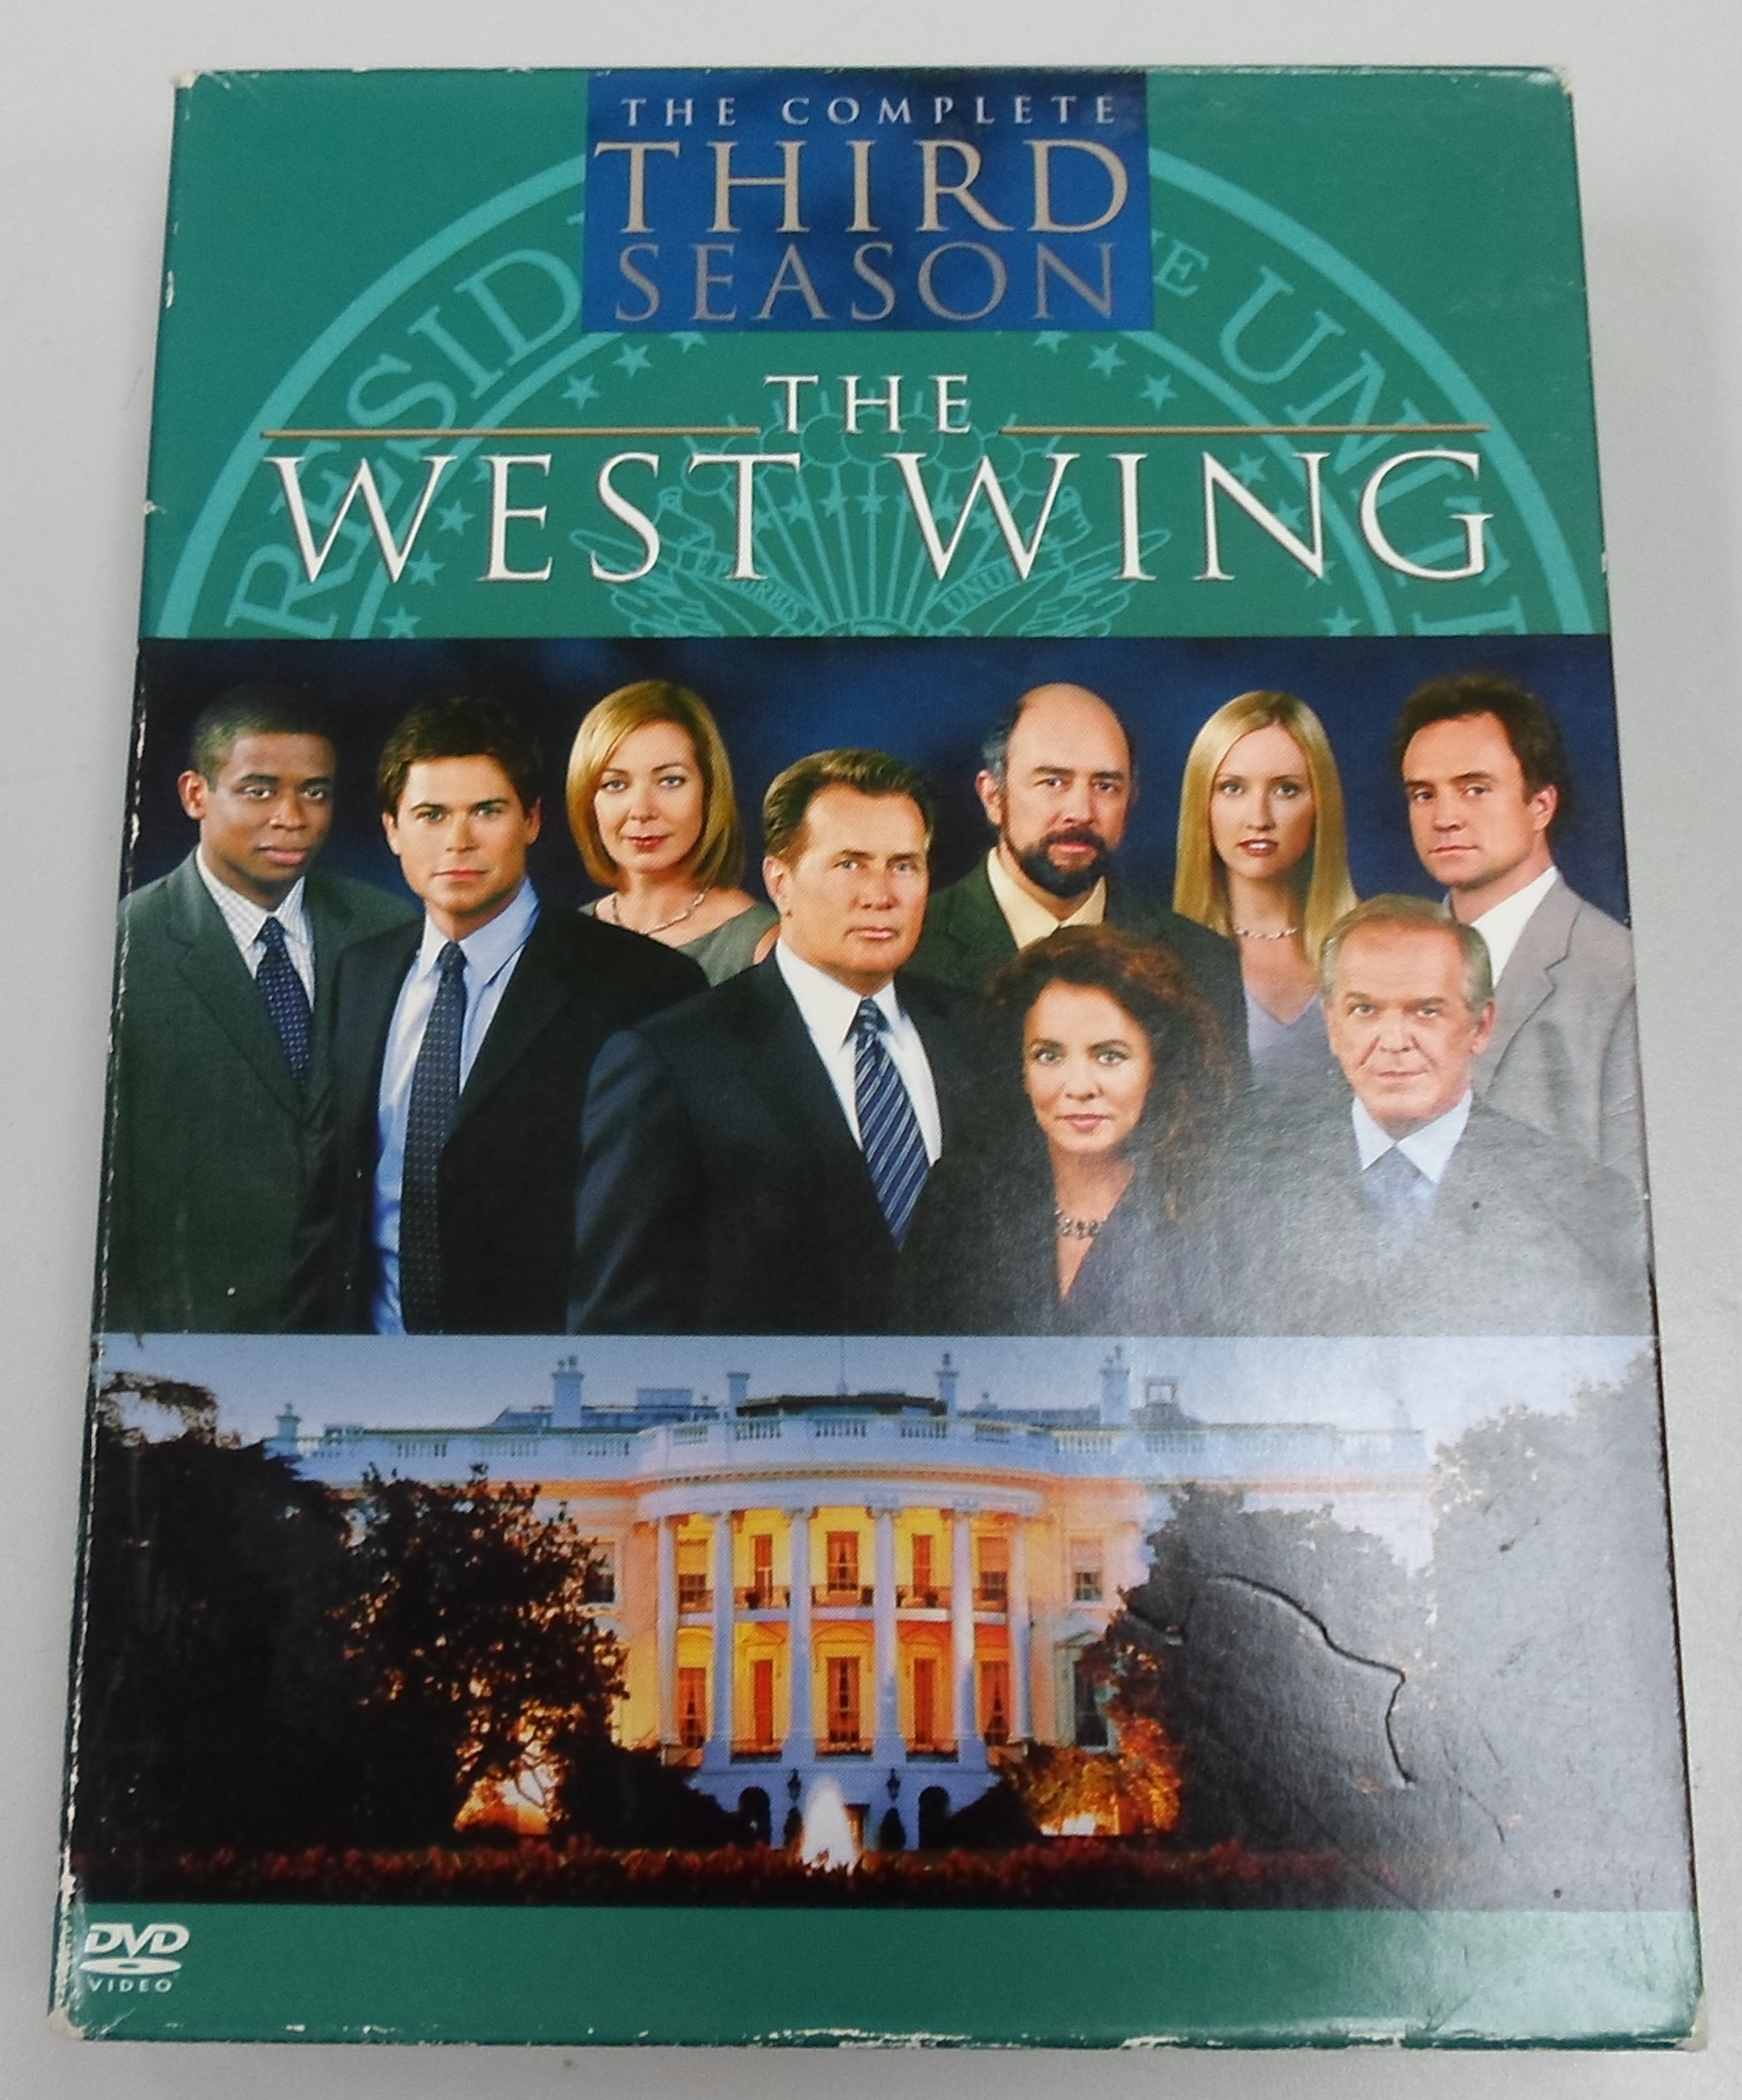 THE WEST WING - SEASON 3 - DVD BOX SET